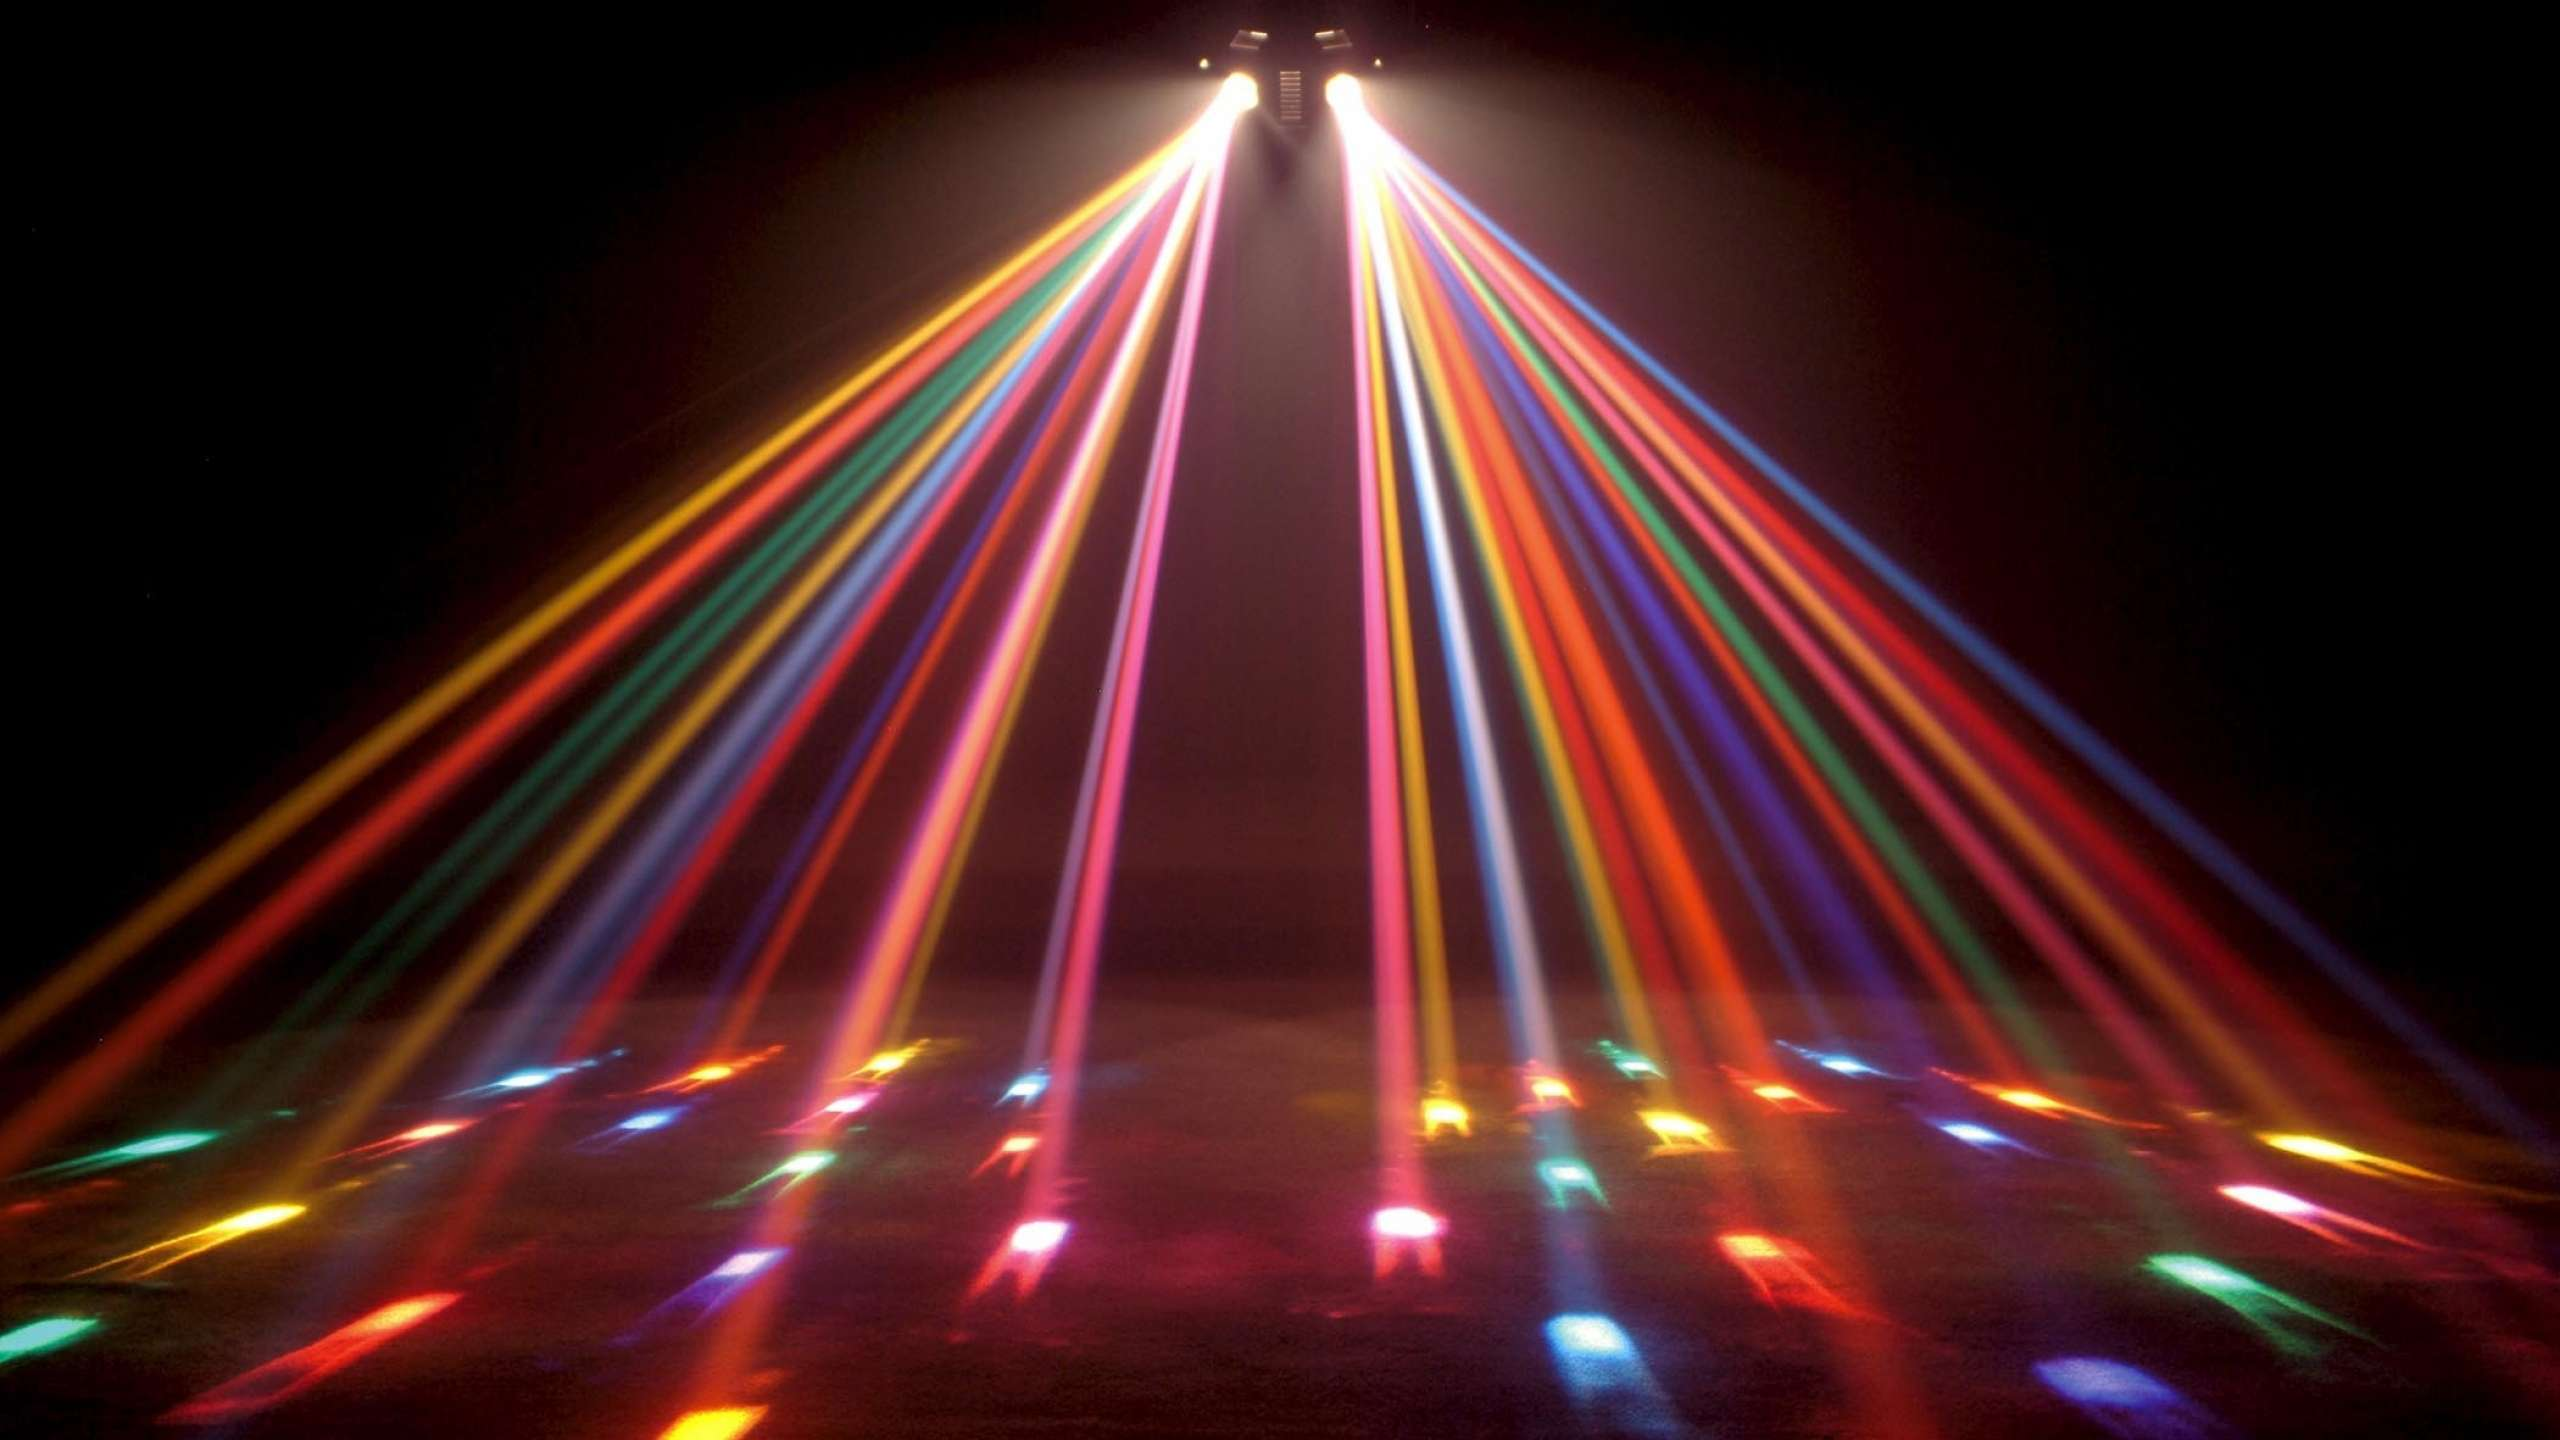 Disco-lights-for-your-iMac-wallpaper-wp3604830